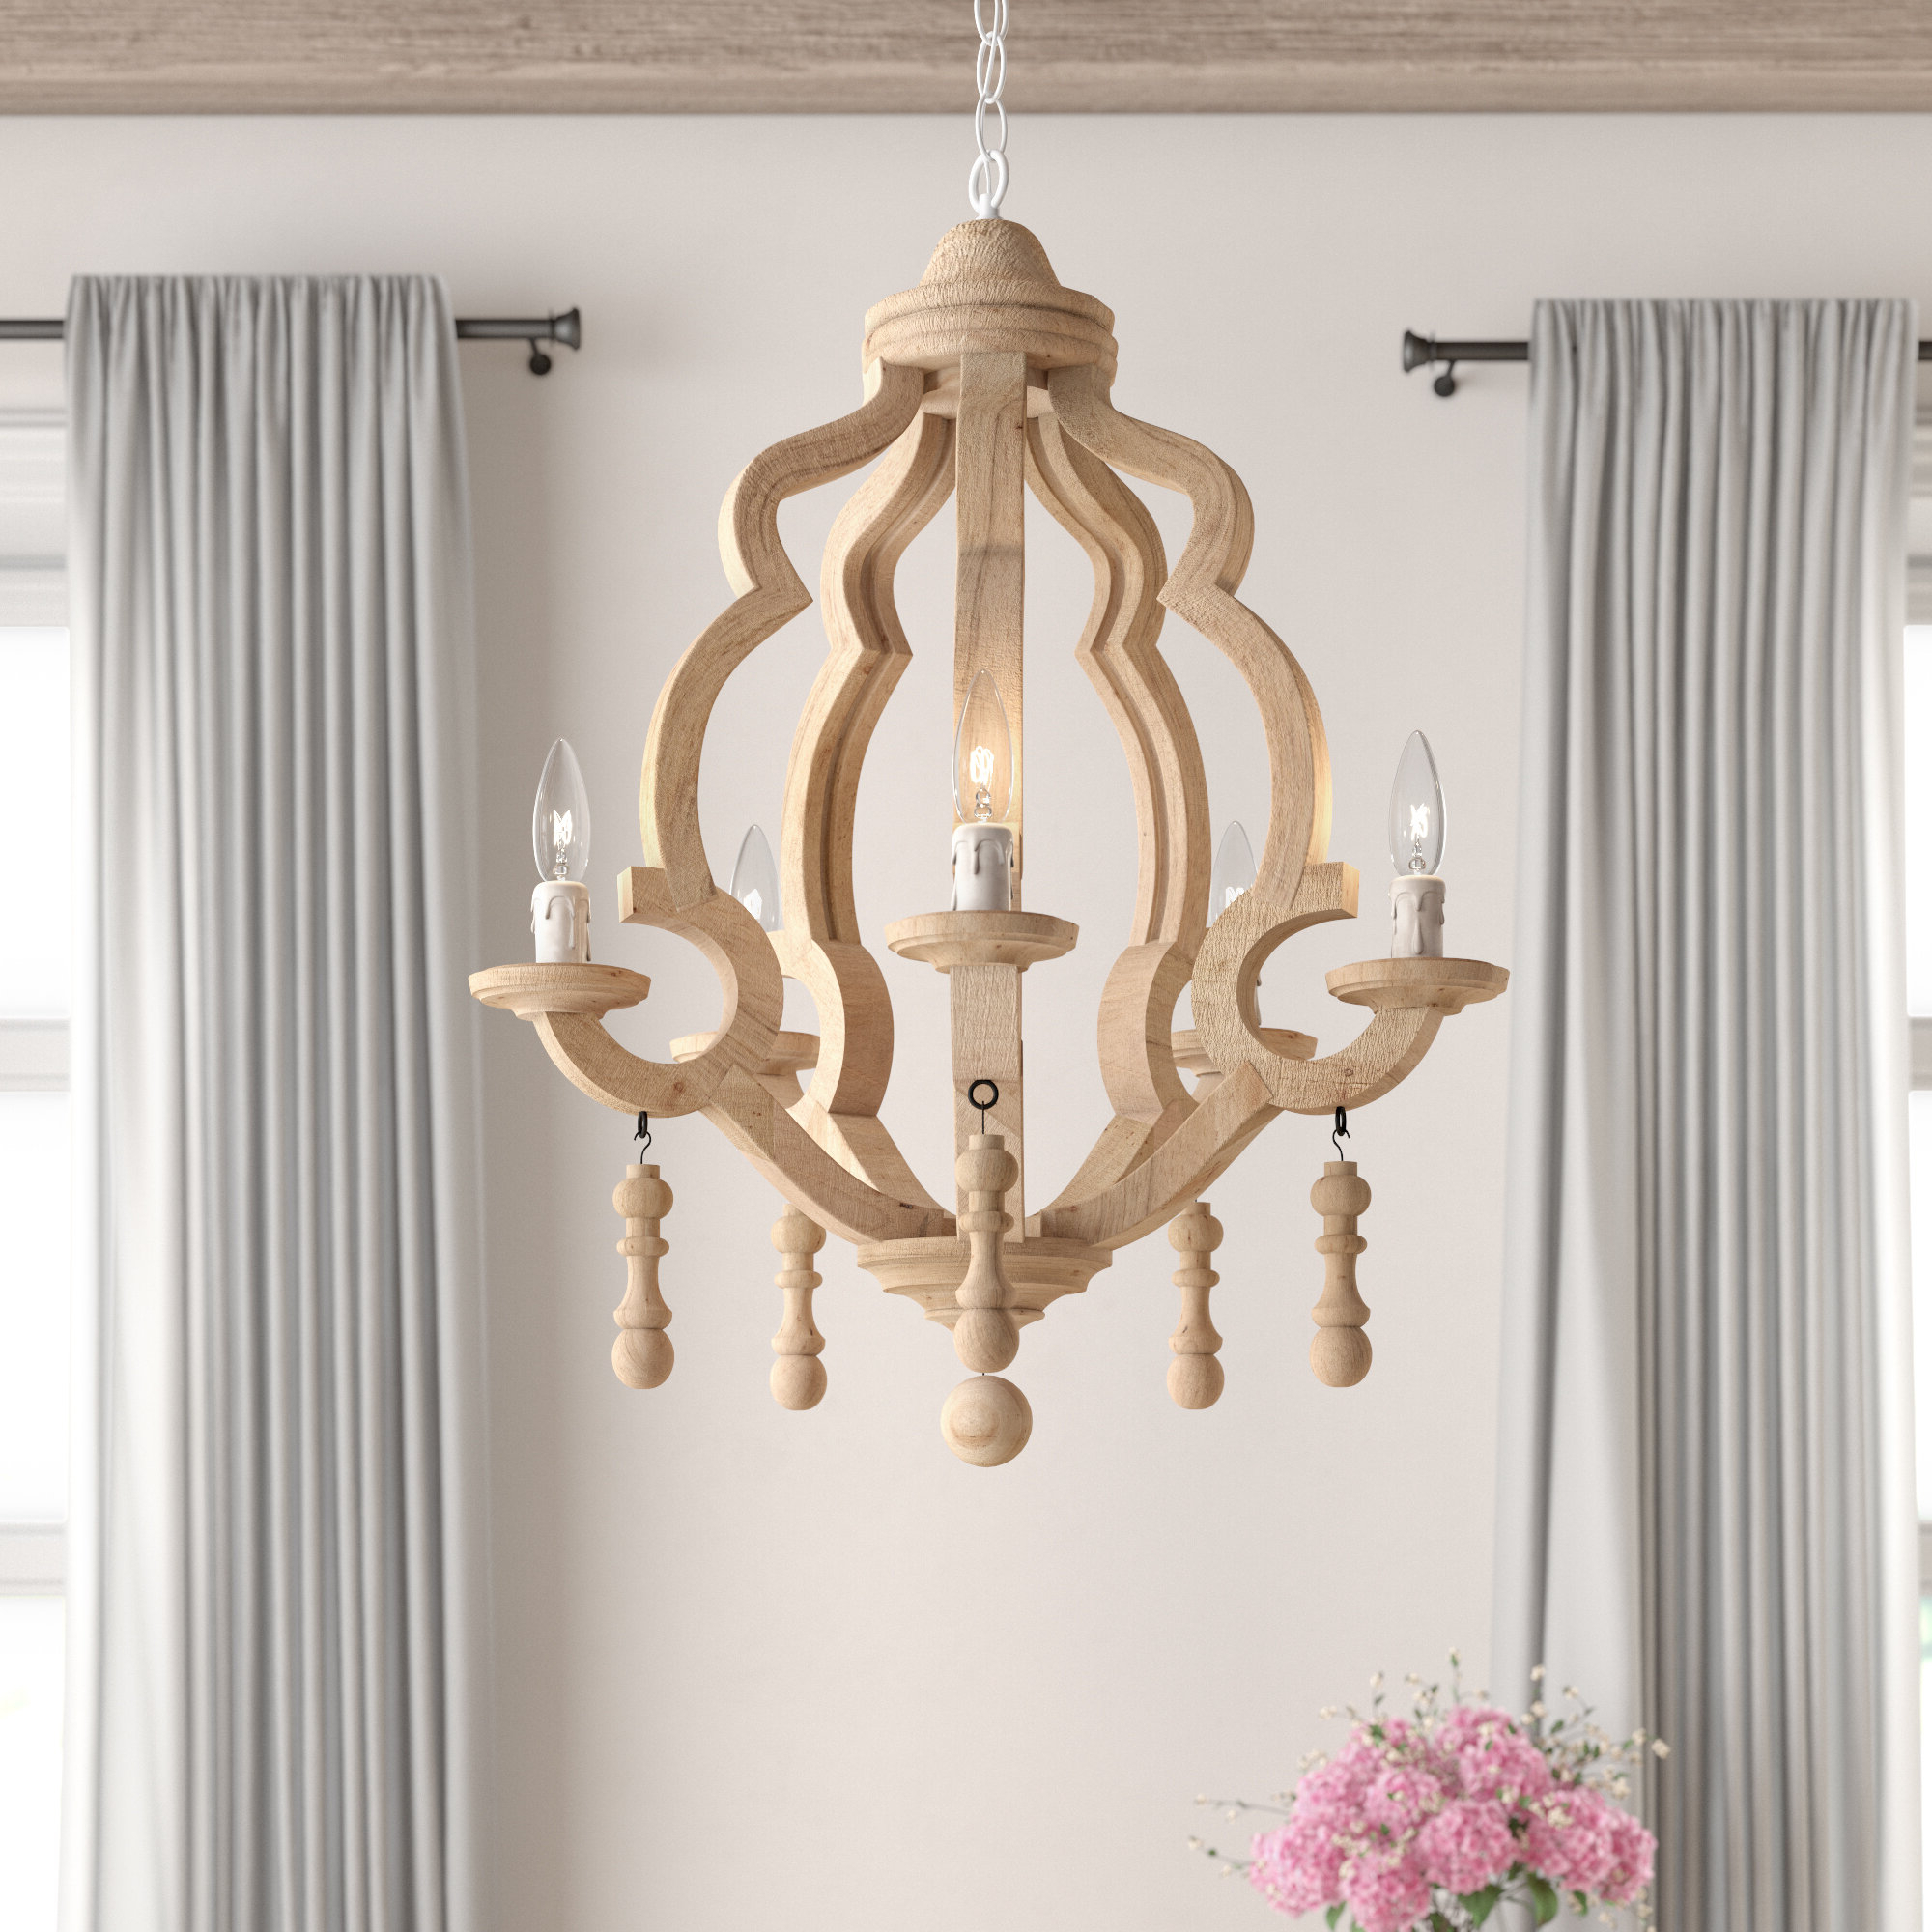 Preferred Duron 5 Light Empire Chandeliers Throughout Kare 5 Light Chandelier (View 14 of 20)